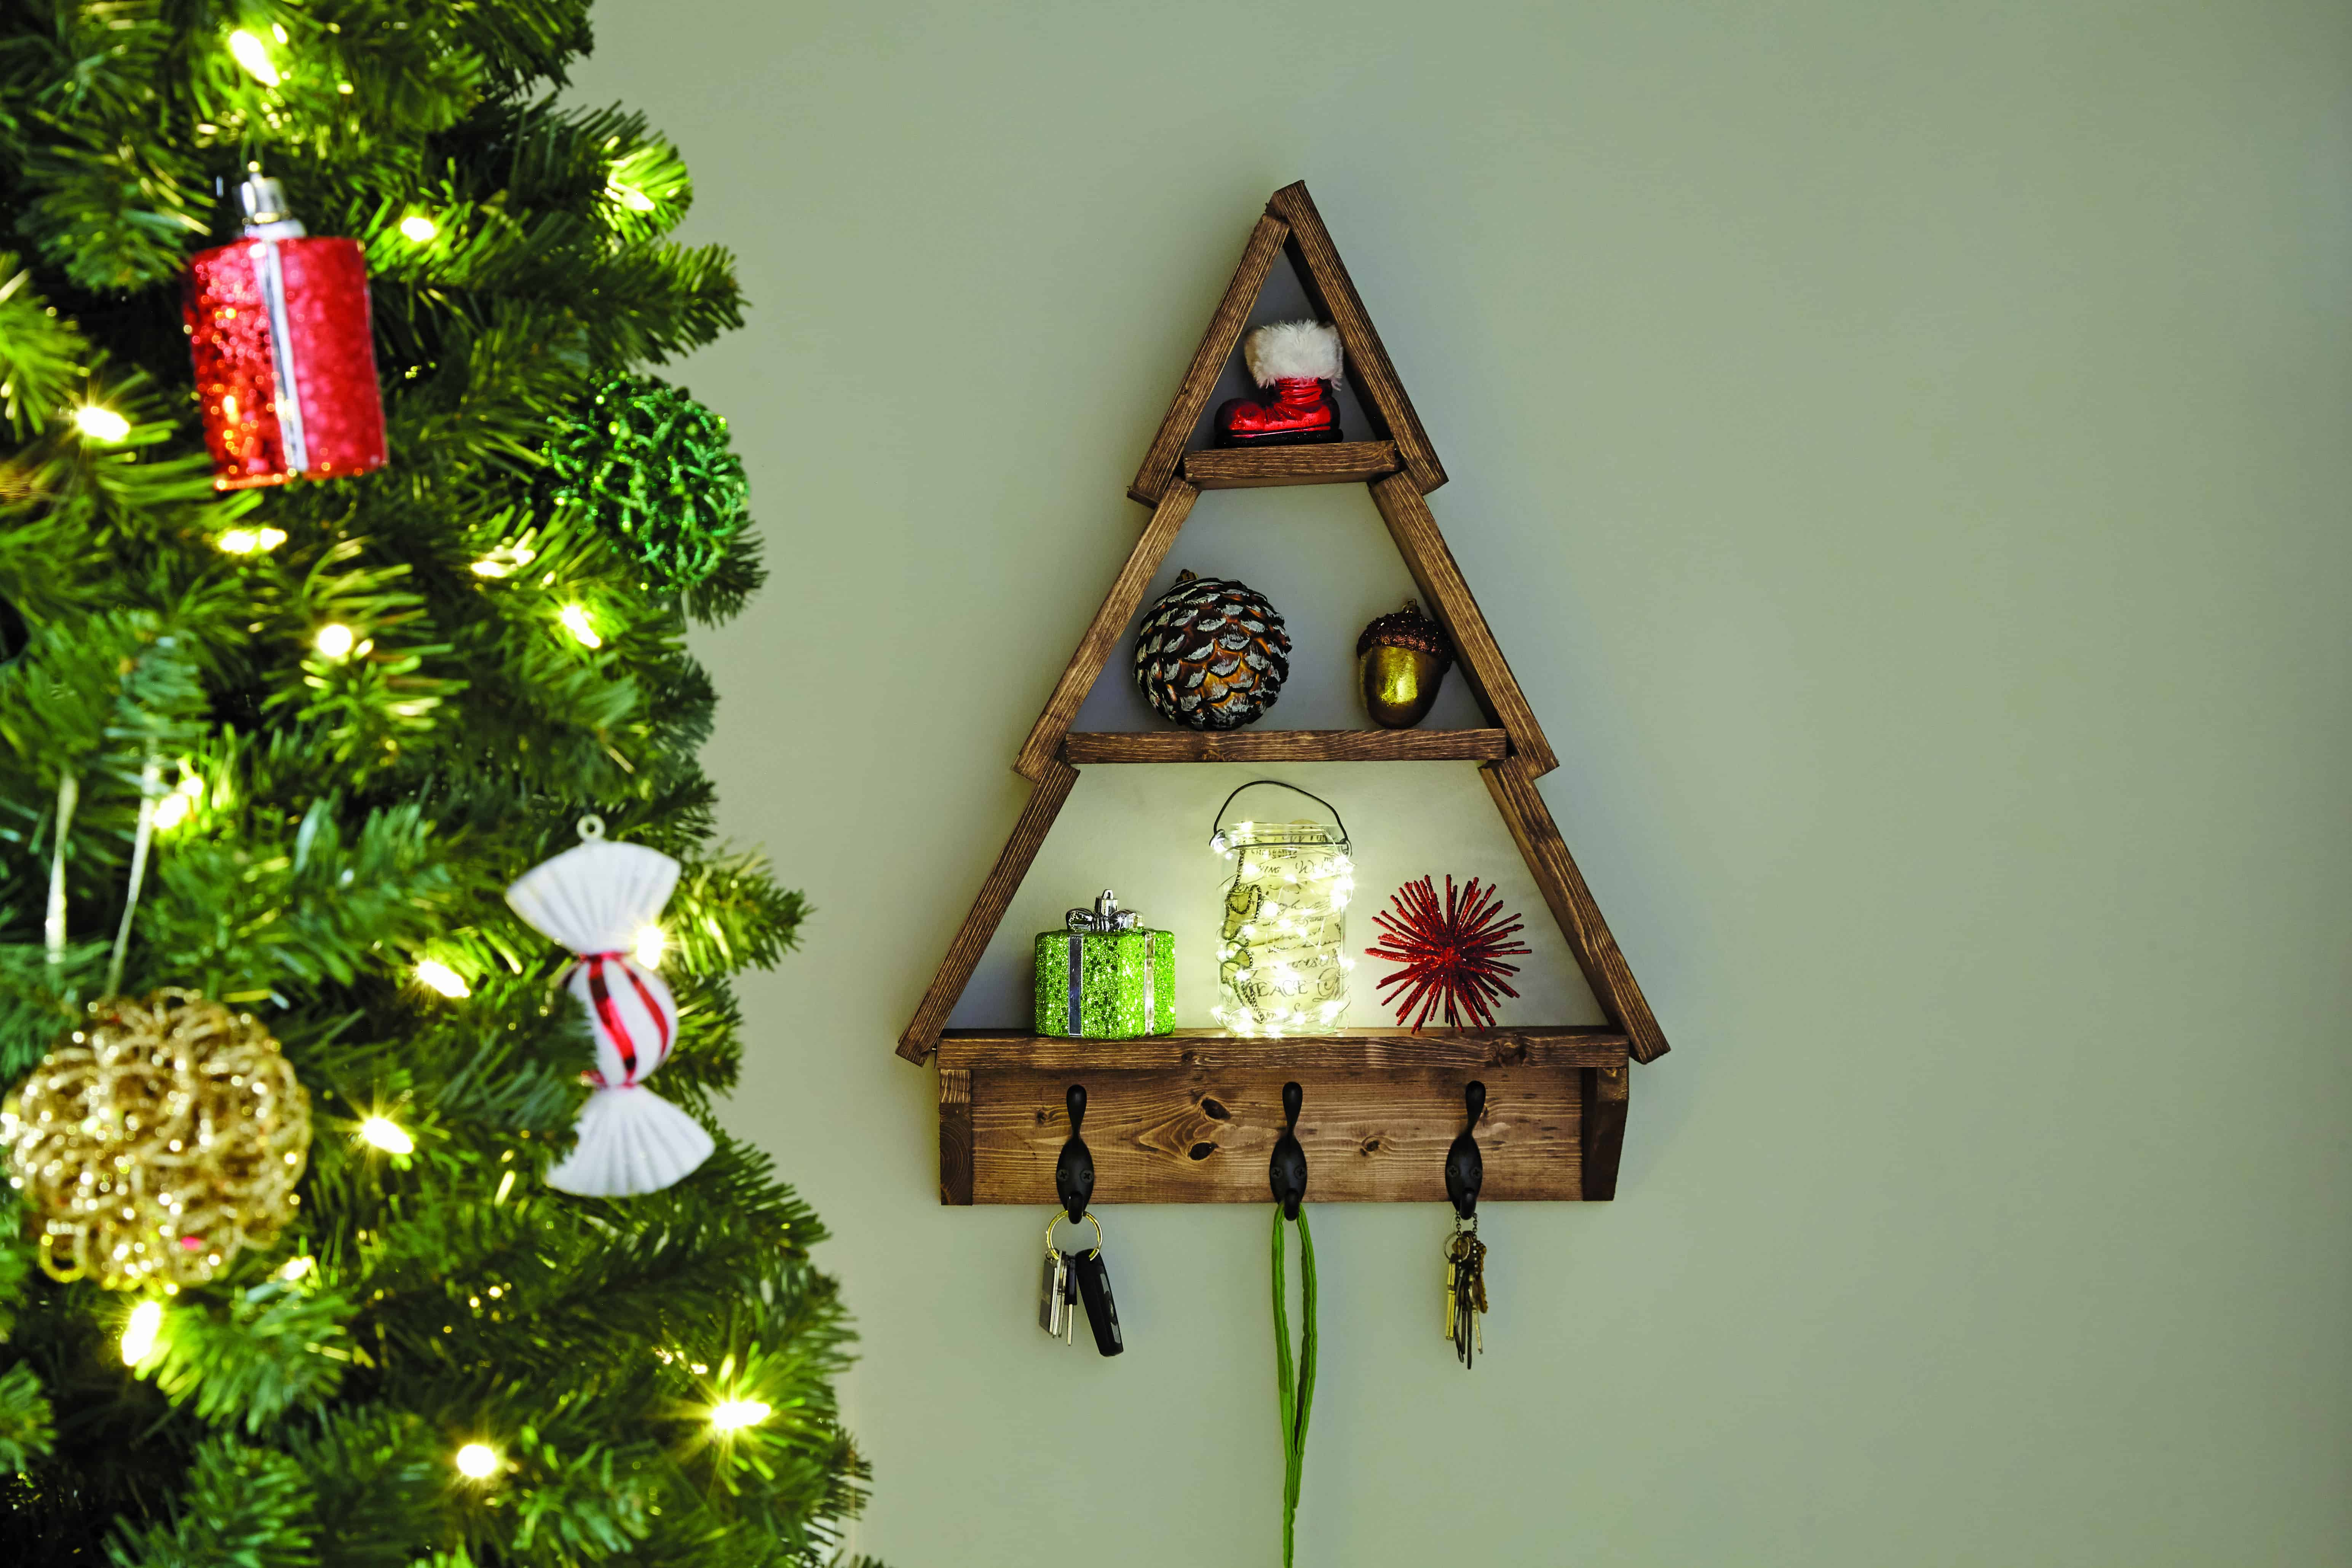 Home Depot Holiday Hours Christmas Tree Shelf Save The Date Inspiration For Moms